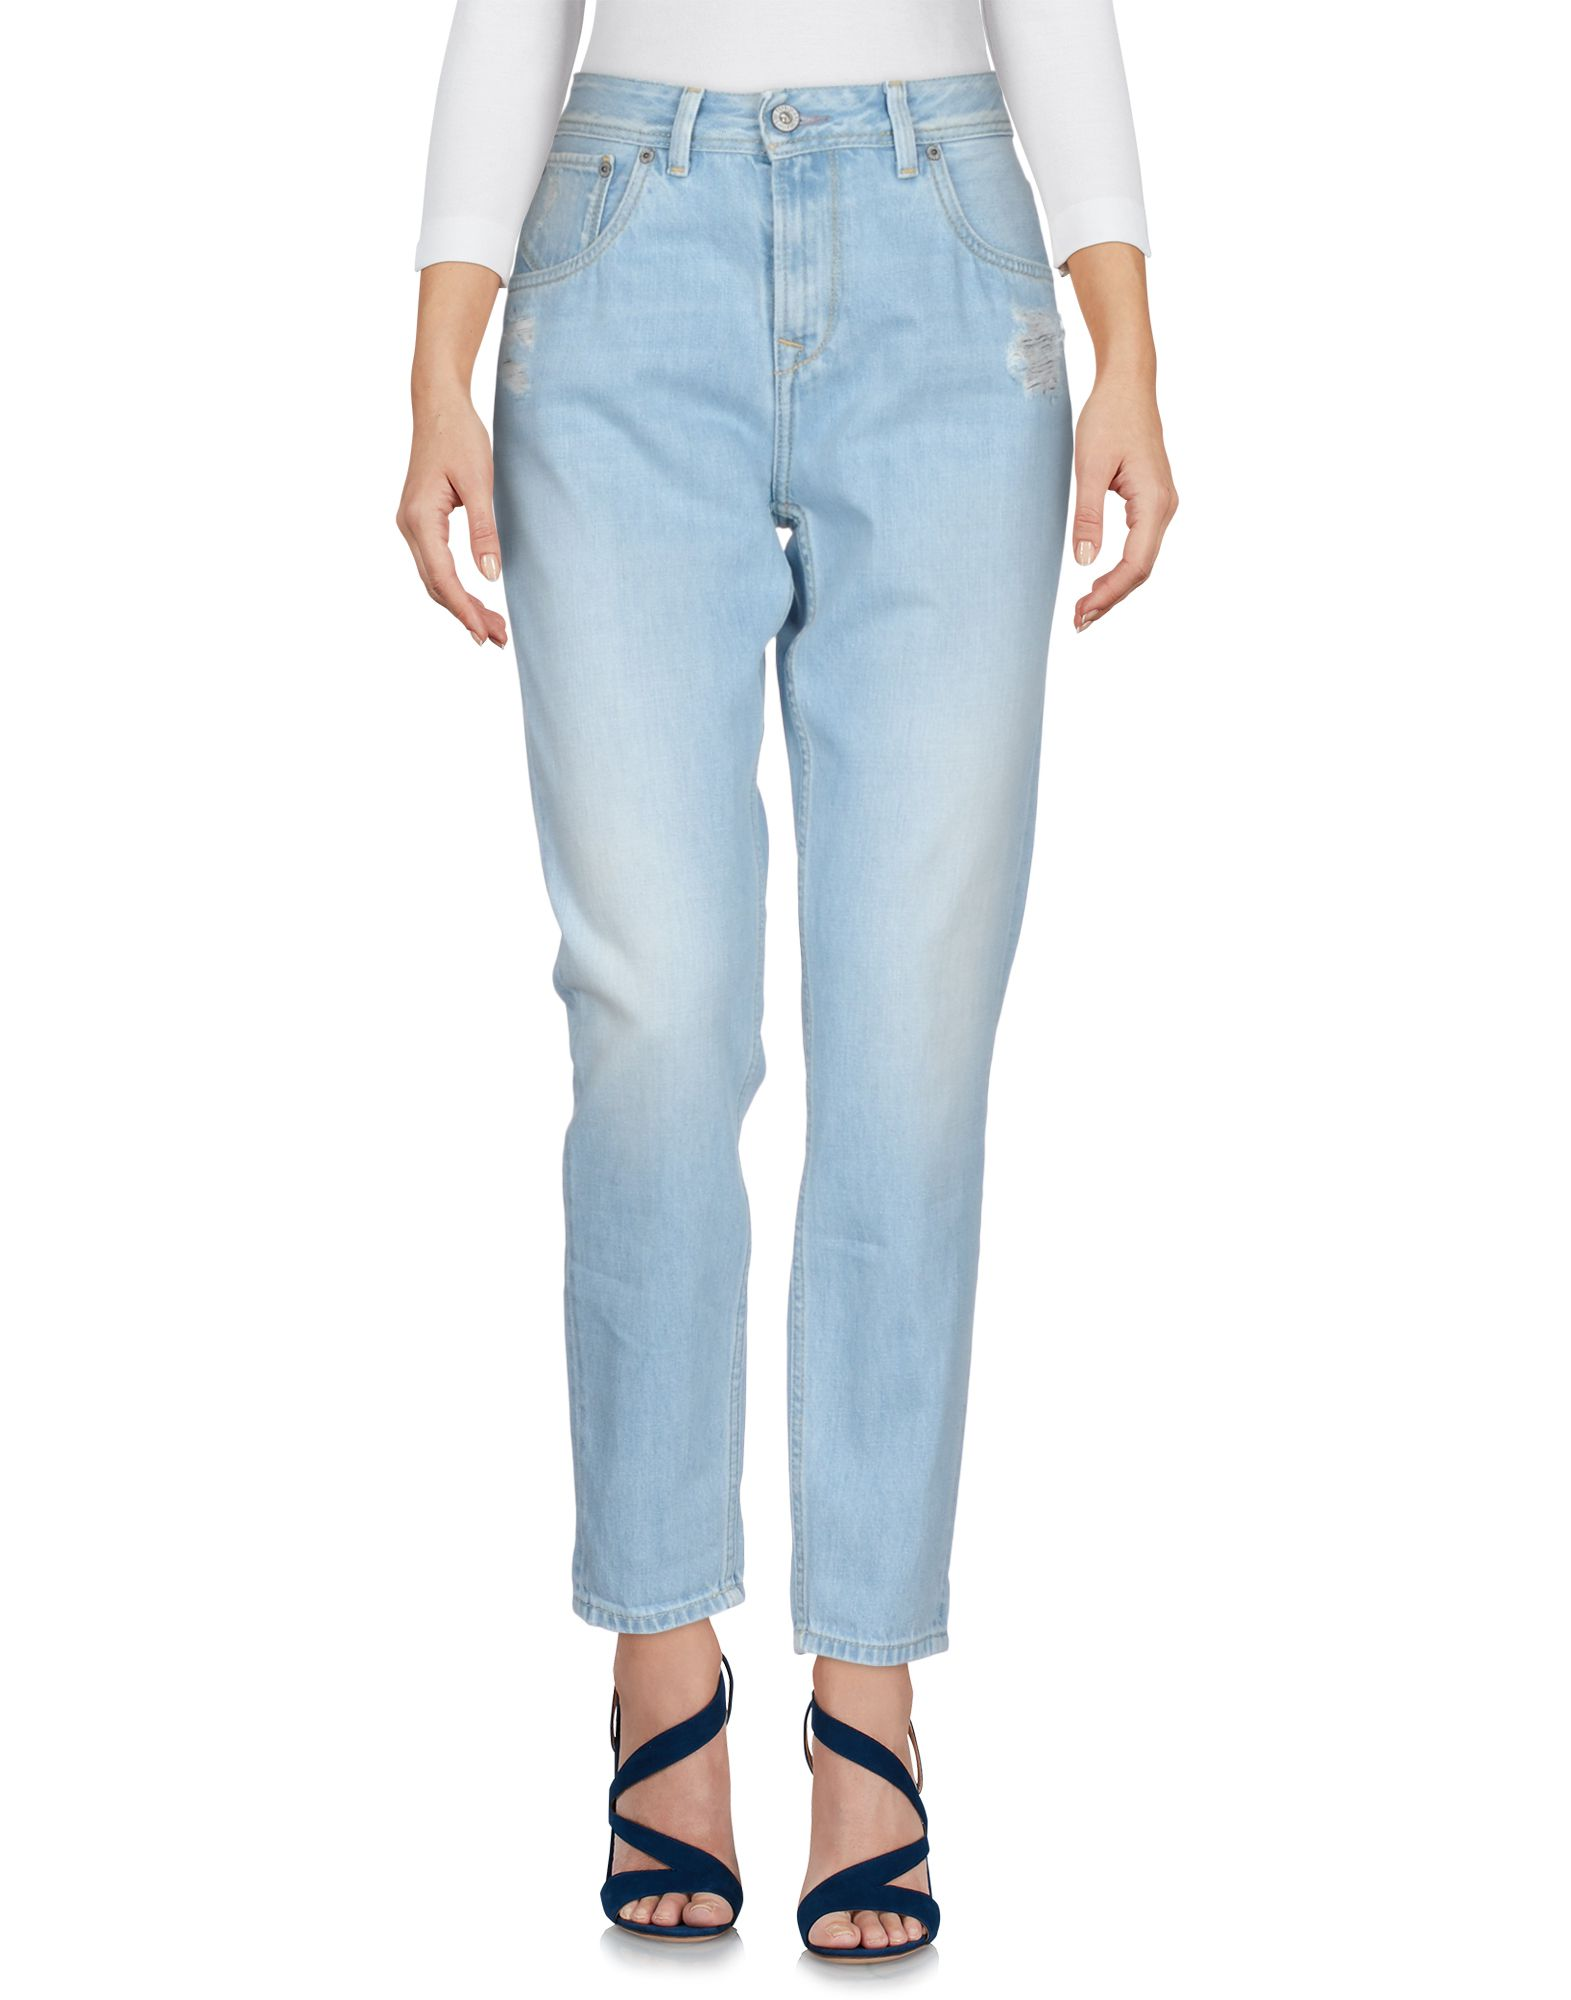 PEPE JEANS Джинсовые брюки summer boyfriend jeans for women hole ripped white lace flowers denim pants low waist mujer vintage skinny stretch jeans female